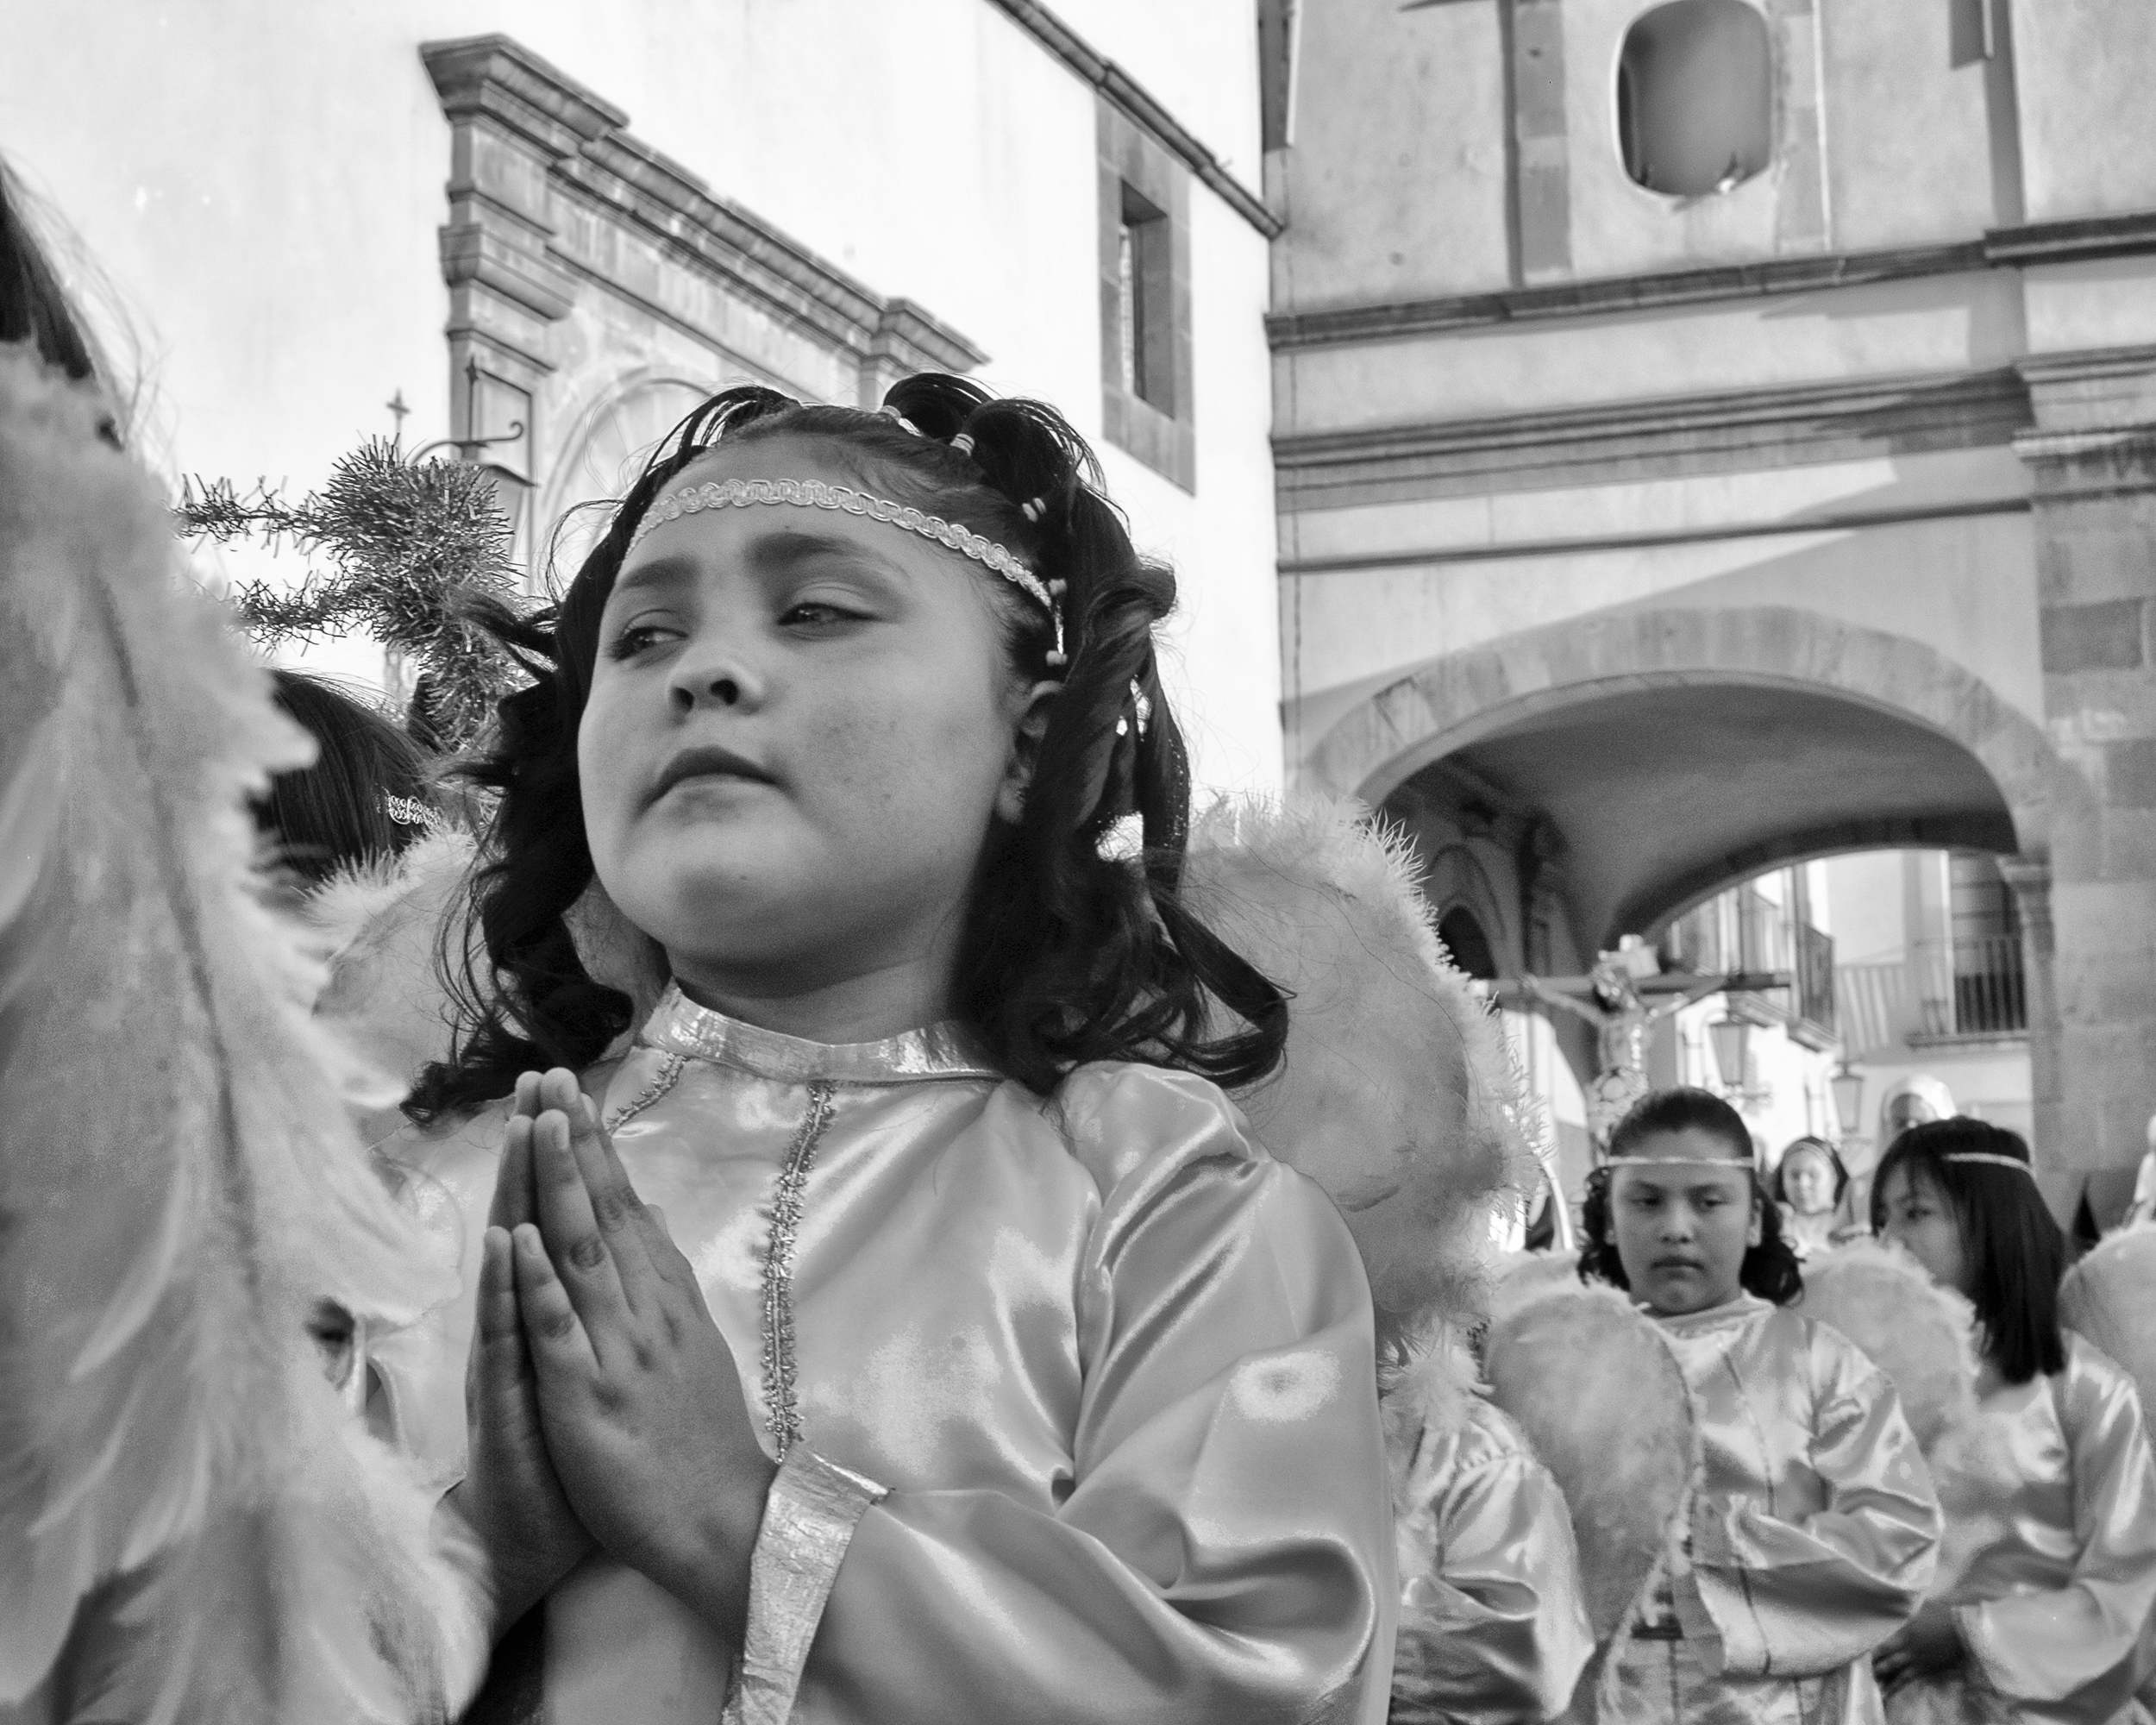 angel procession, queretaro